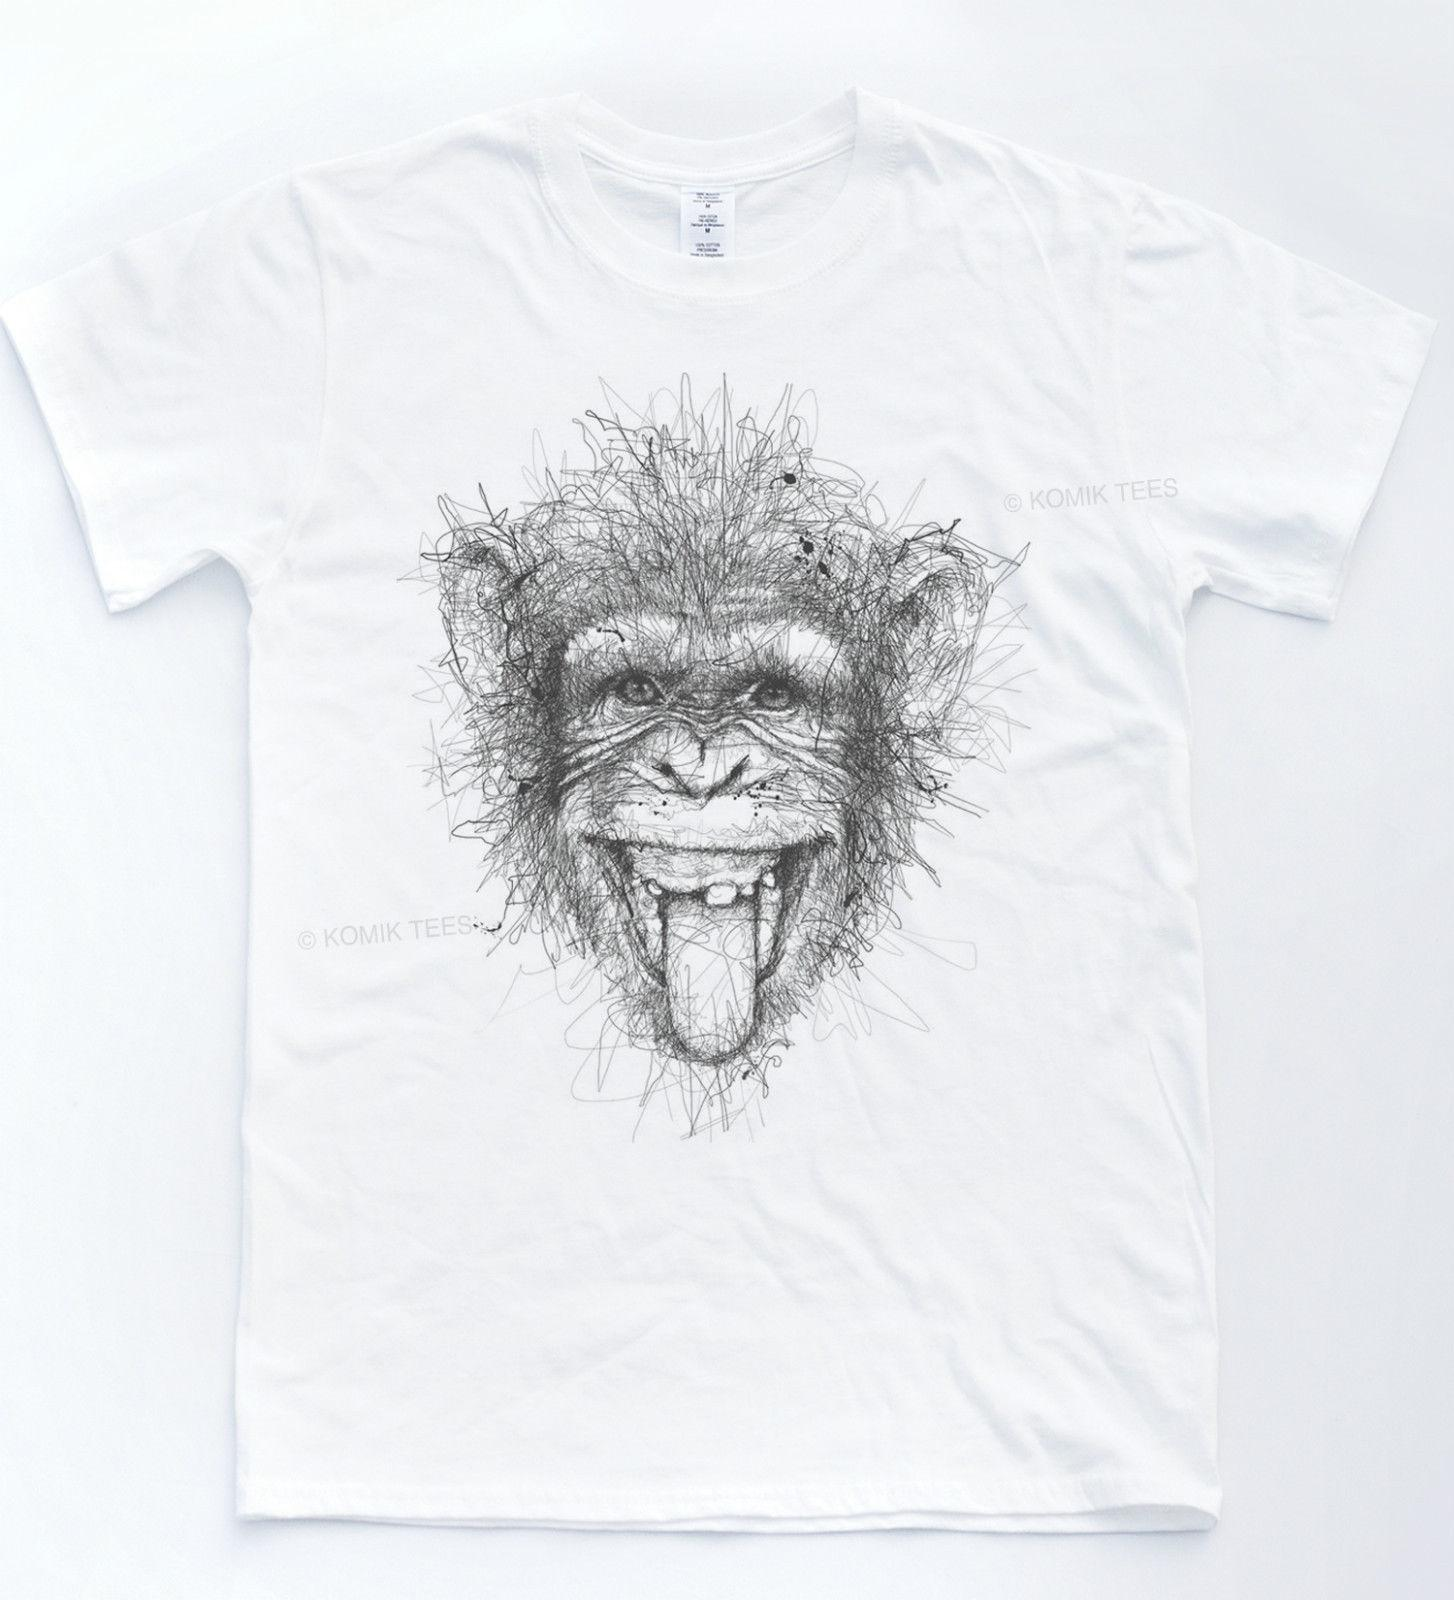 Monkey sketch t shirt drawn art indie tee animal chimp funny portrait pencil top long sleeve shirt t shirts design from tshirtemperor23 11 17 dhgate com